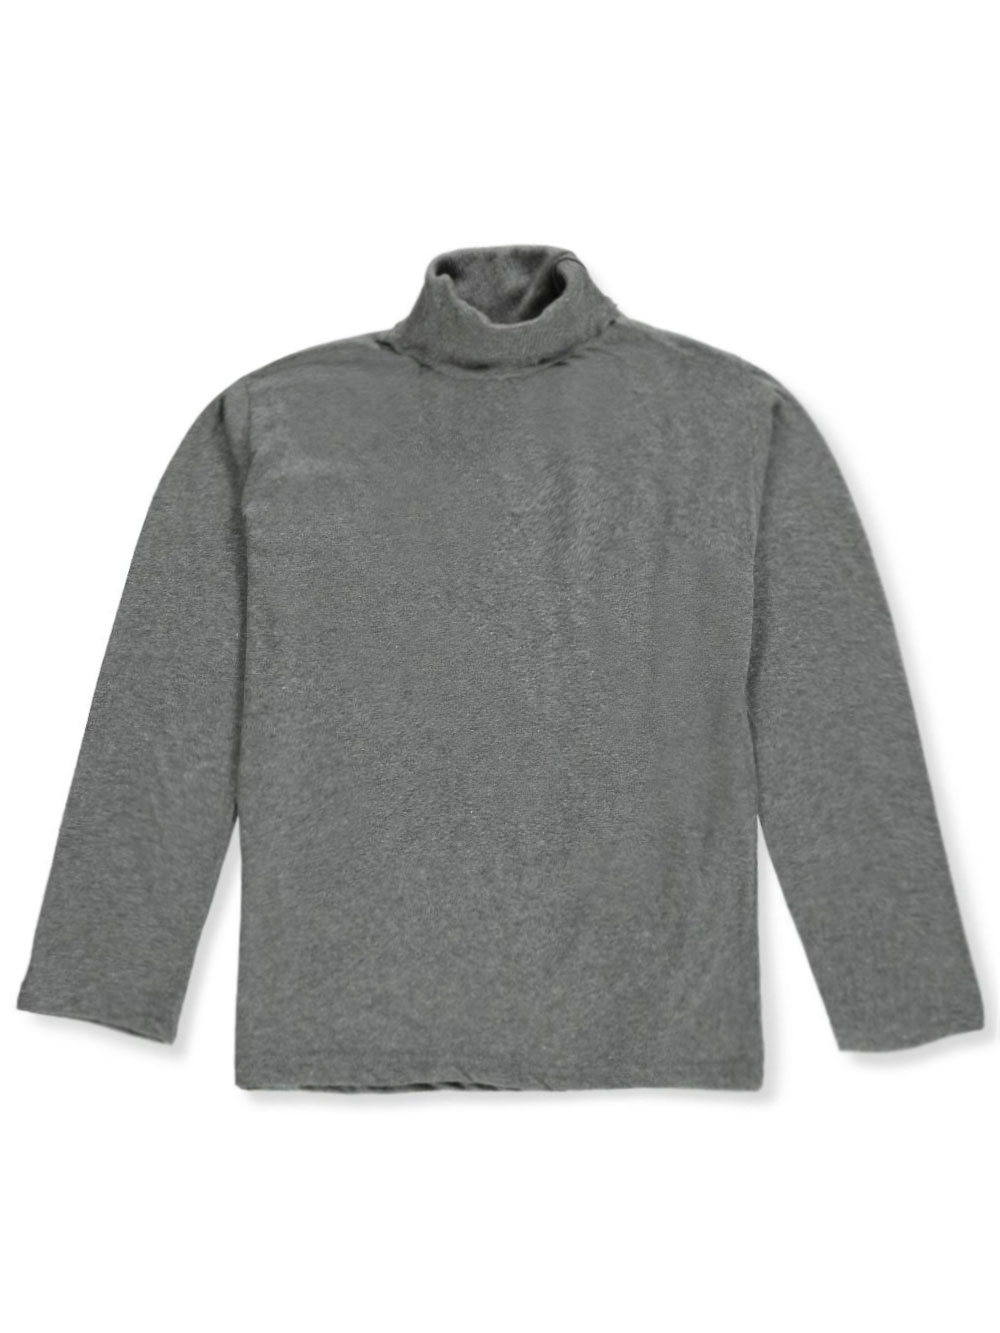 Medium Gray Heather Hoodies